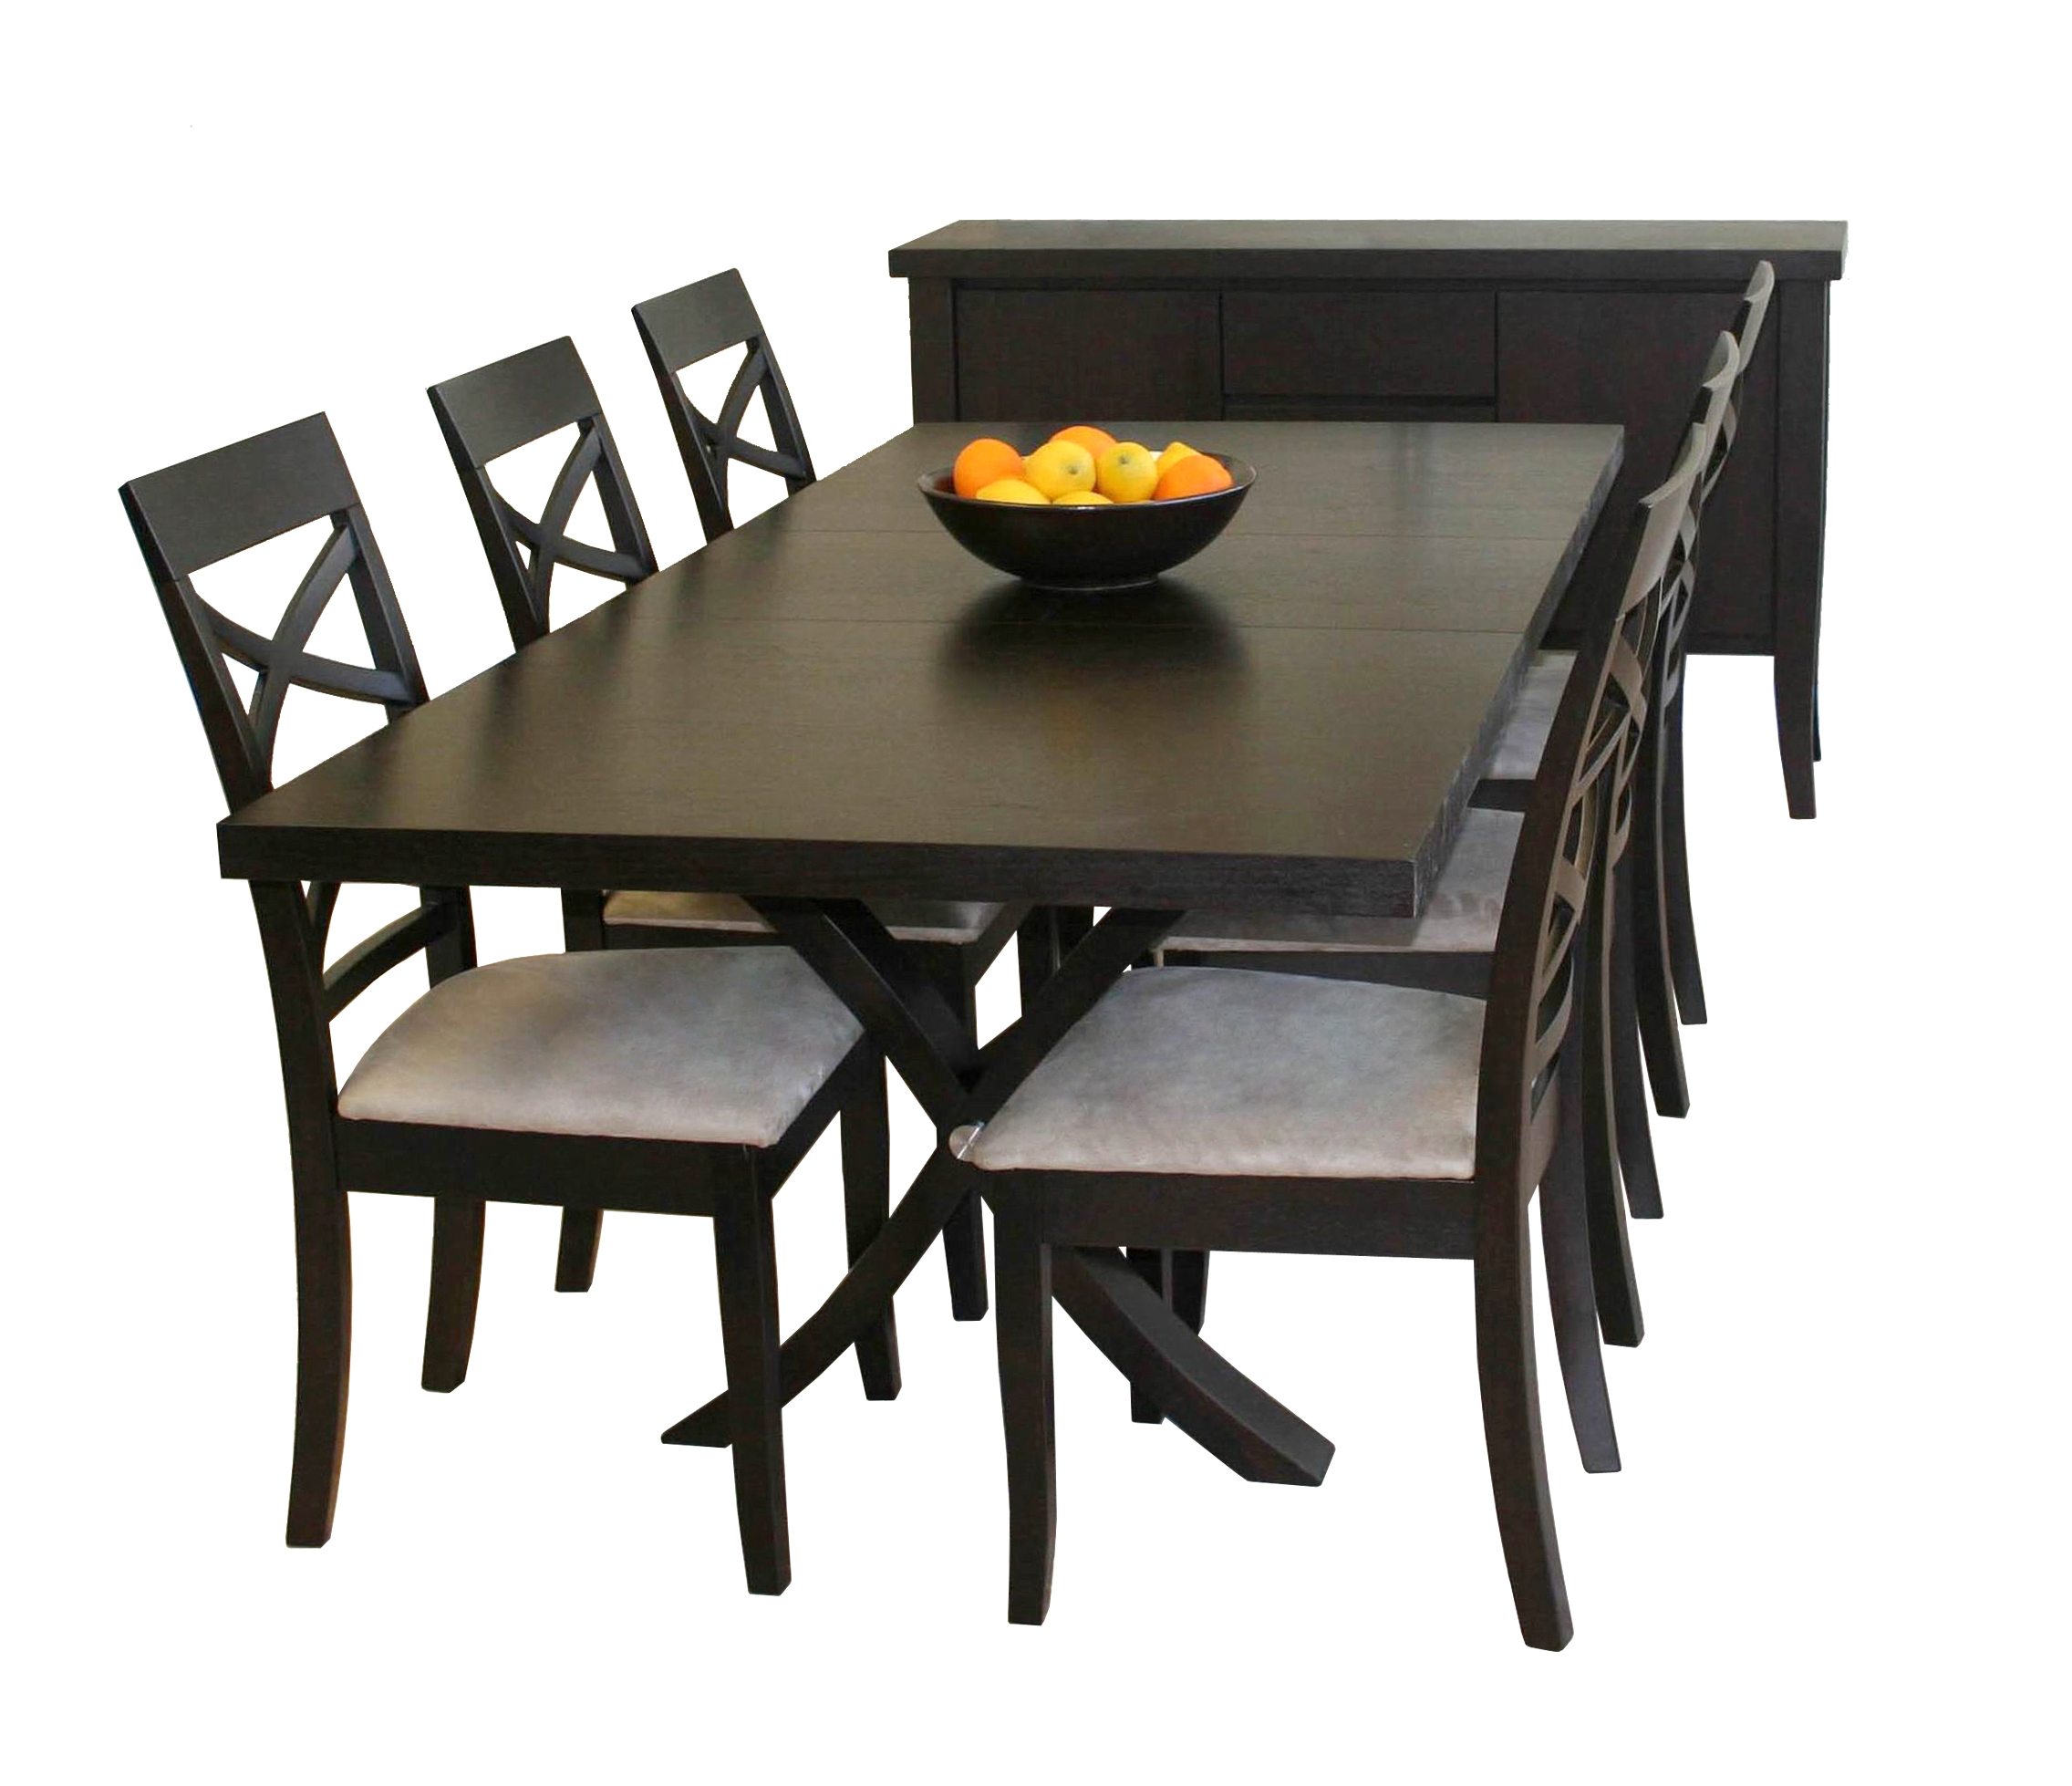 Furniture chandigarh panchkula haryana trendz wooden for On the table restaurant